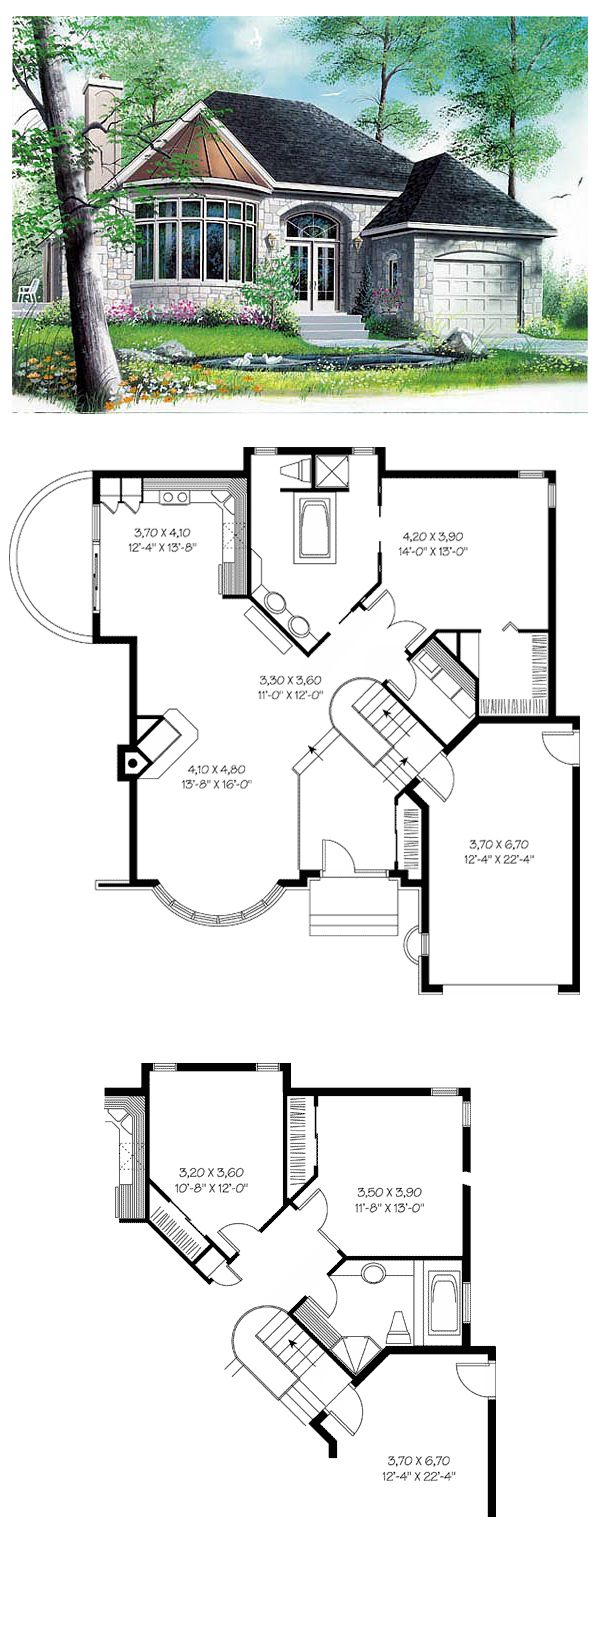 Hillside House Plan 65084 | Total living area: 1208 sq ft,1 bedroom & 1 bathroom. A modified formal entry greets a welcoming layout with dining room, family room with fireplace and kitchen-breakfast area. #hillsidehouse #houseplan